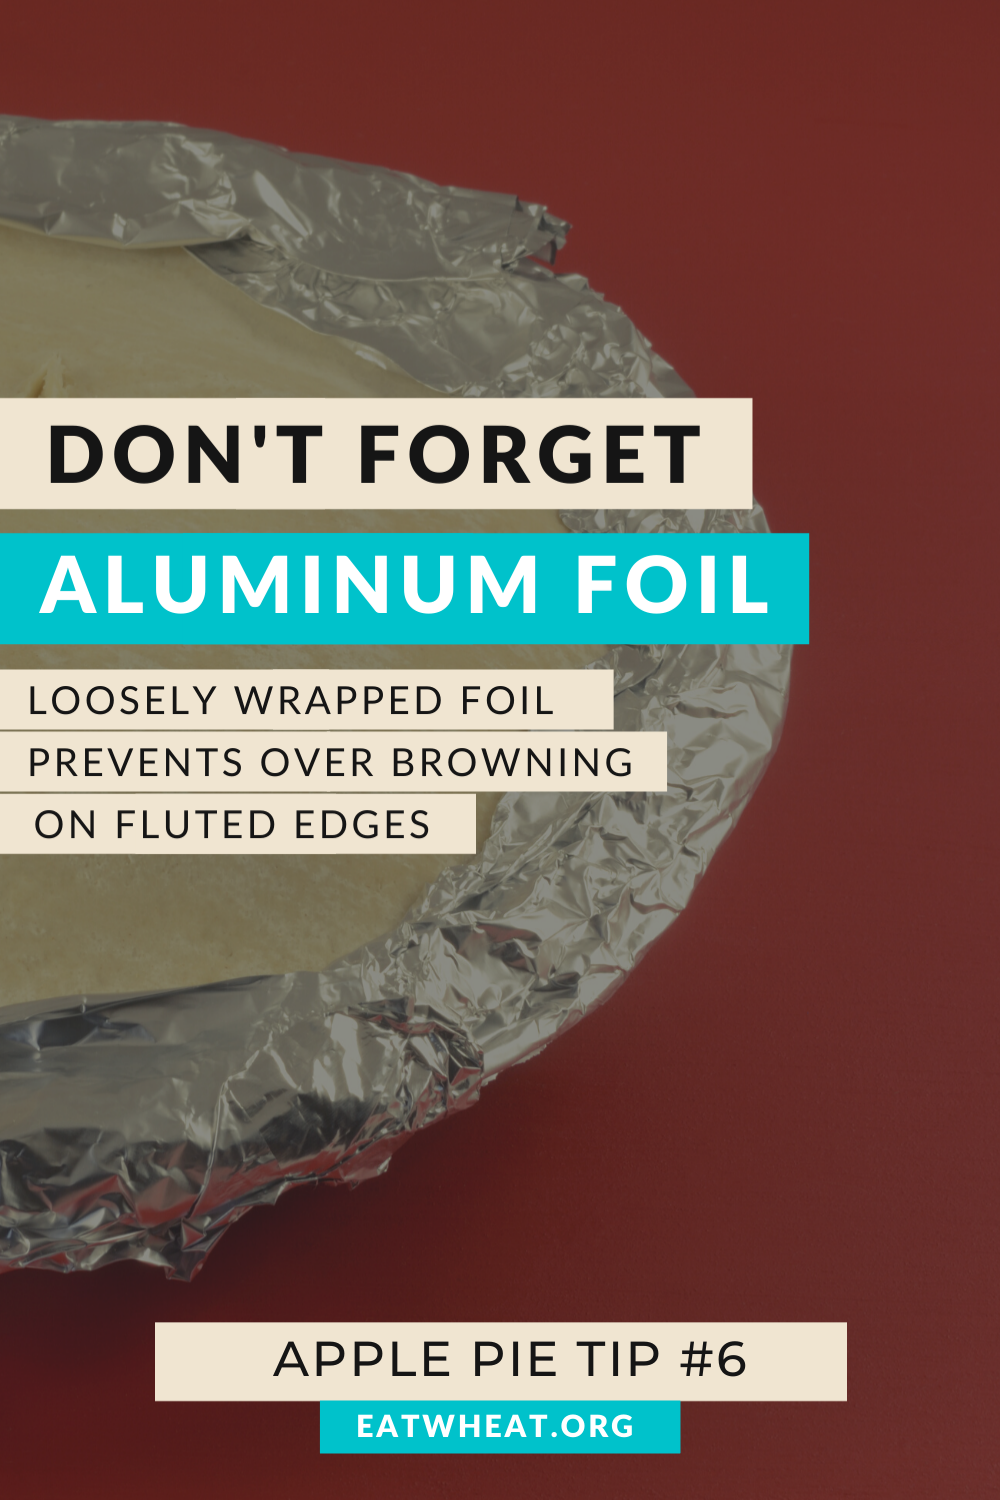 A graphic that says don't forget aluminum foil, loosely wrapped foil prevents over browning on fluted edges. Created for National Apple Pie Day.